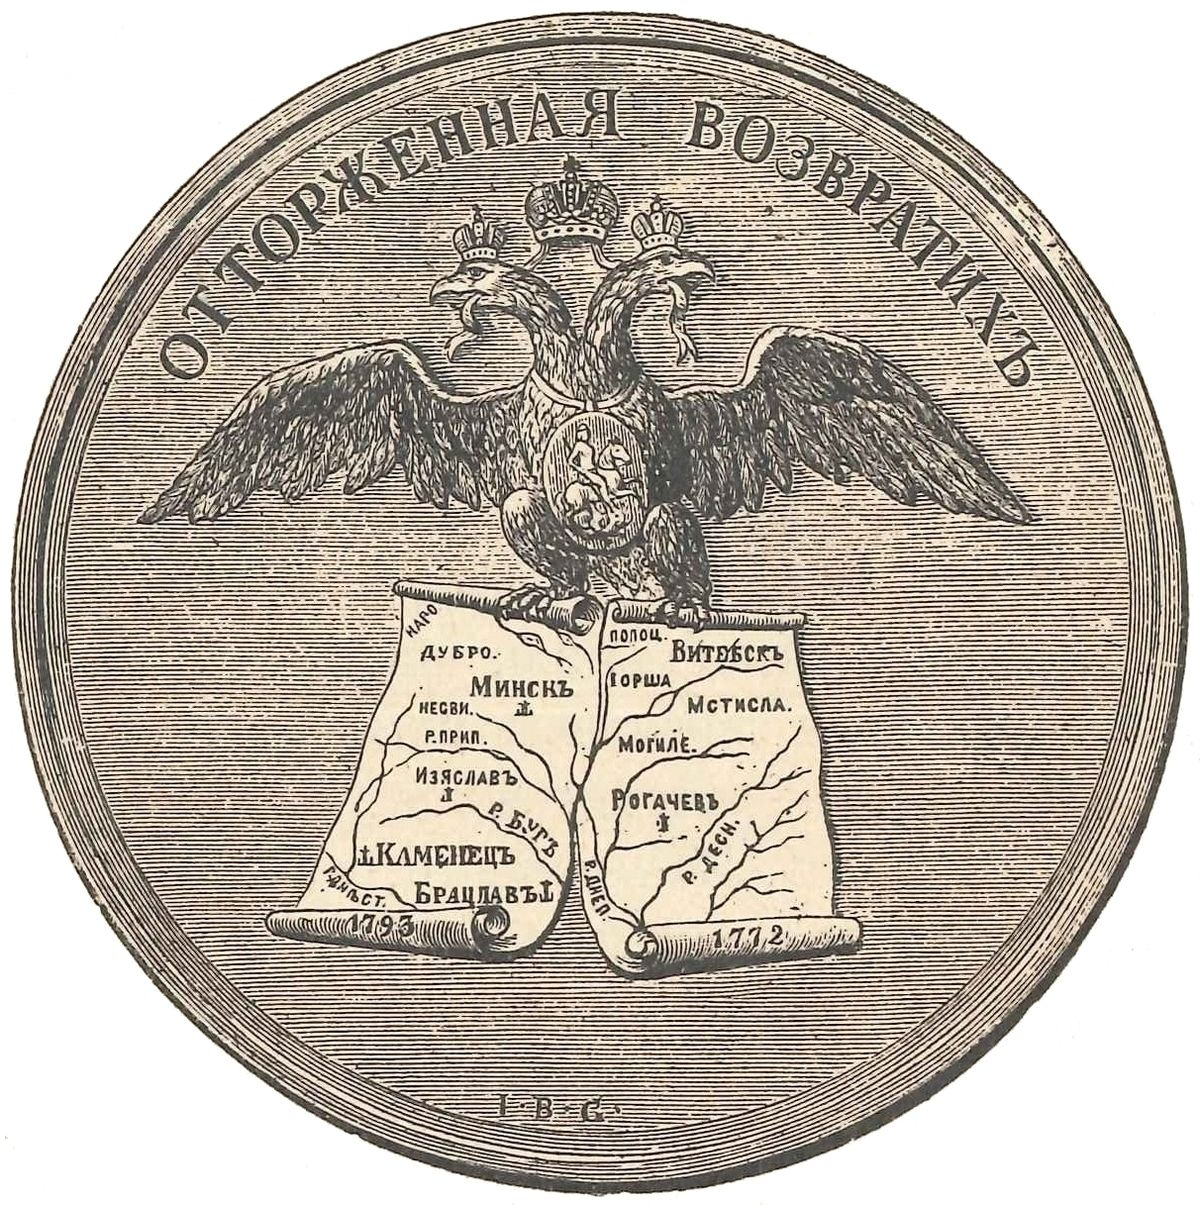 https://upload.wikimedia.org/wikipedia/commons/thumb/0/03/Medal_commemorating_the_reunification_of_Western_Rus%2C_reverse.jpeg/1200px-Medal_commemorating_the_reunification_of_Western_Rus%2C_reverse.jpeg